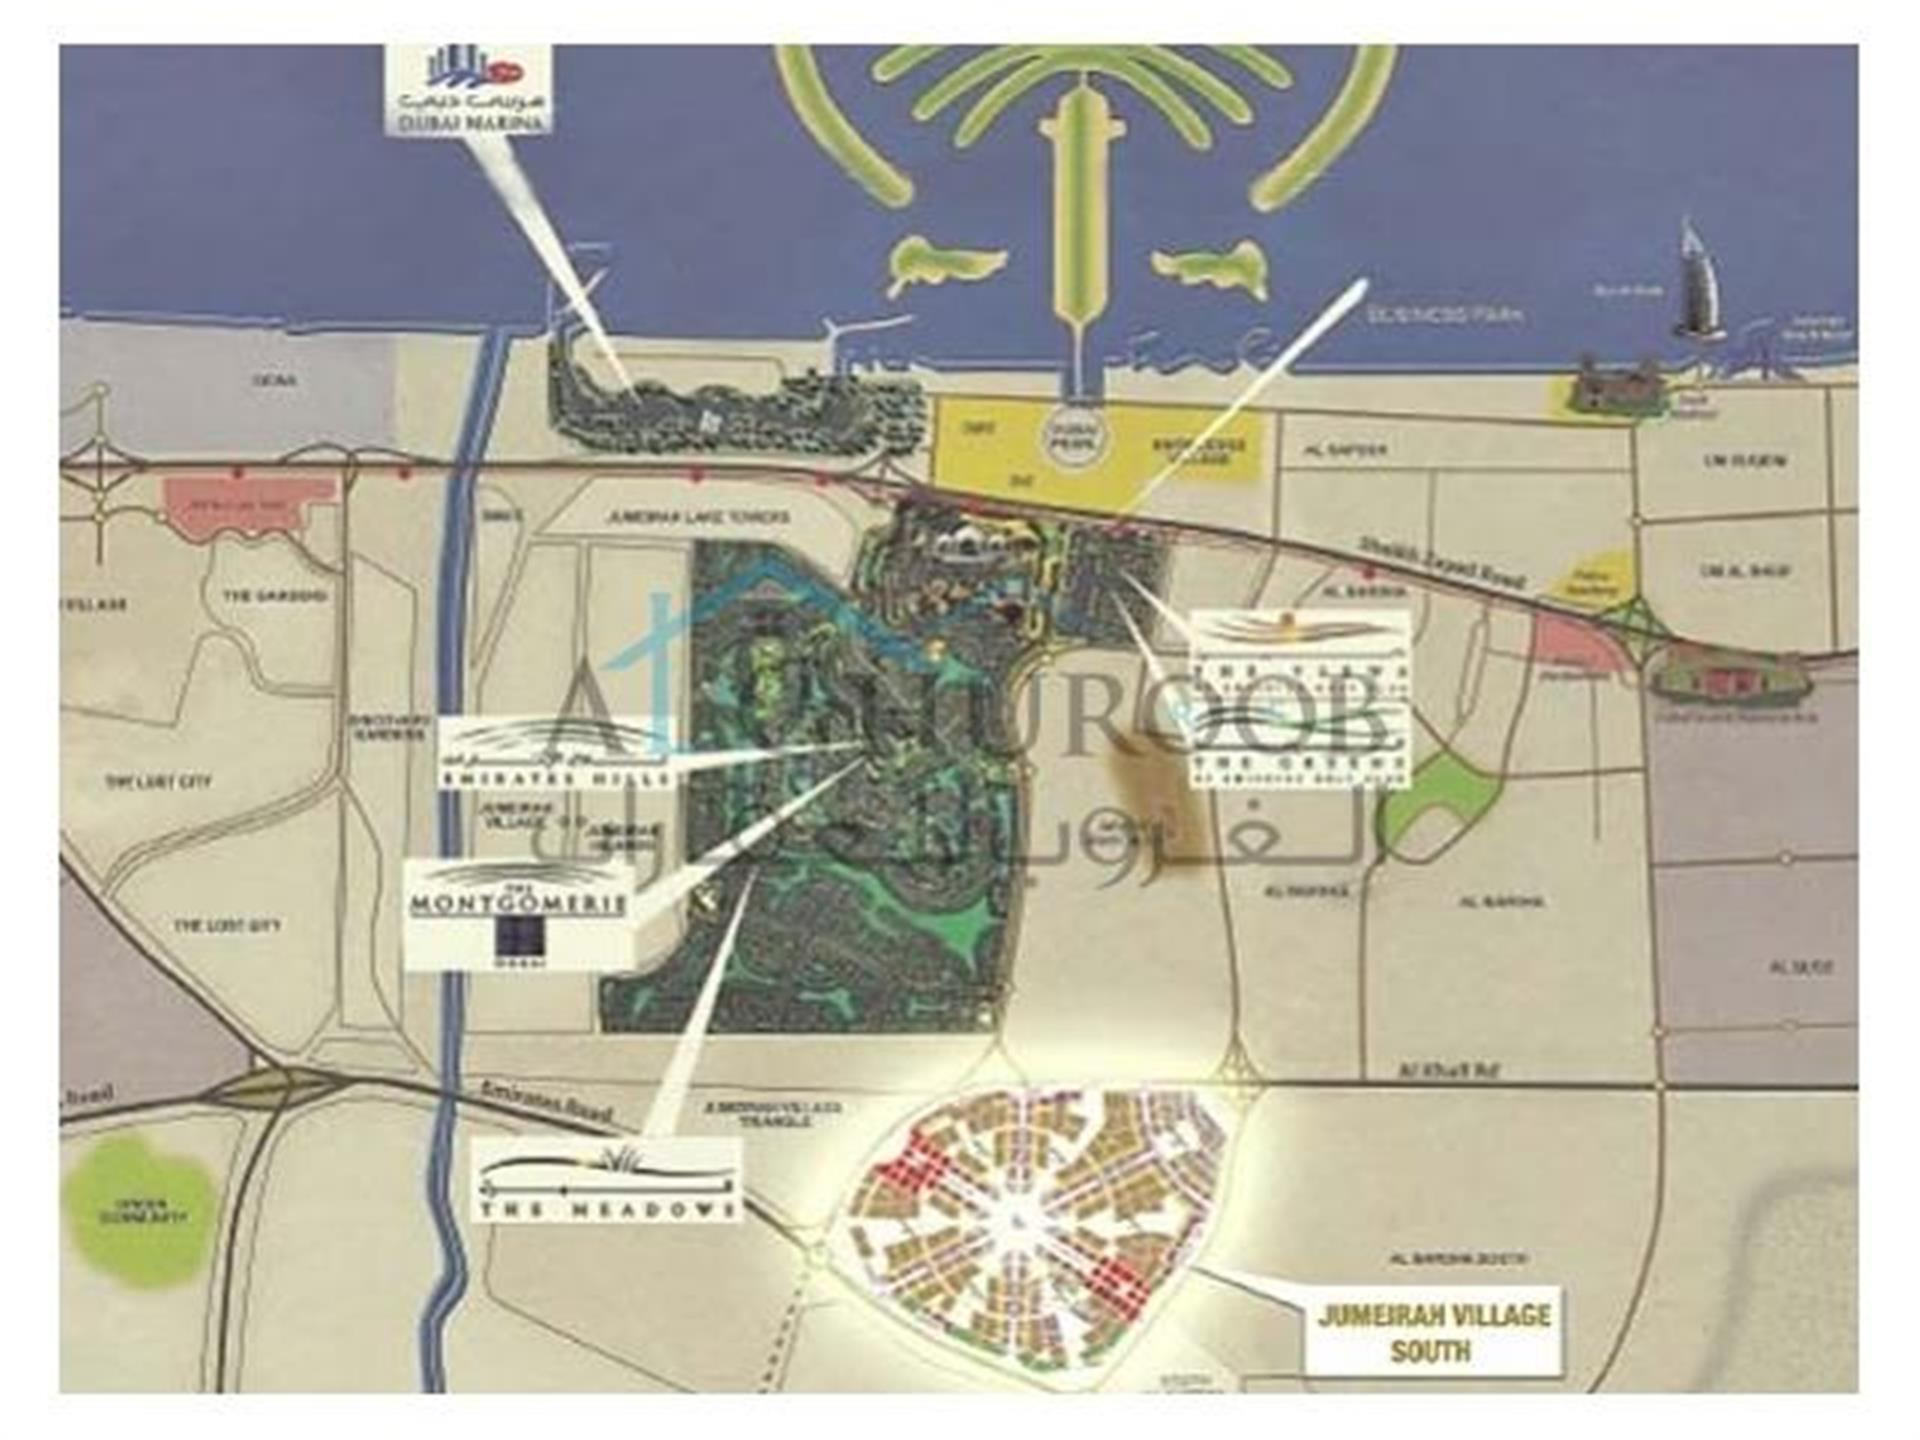 Excellent Residential Plot for Sale in Jumeirah Village Circle the Heart of New Dubai